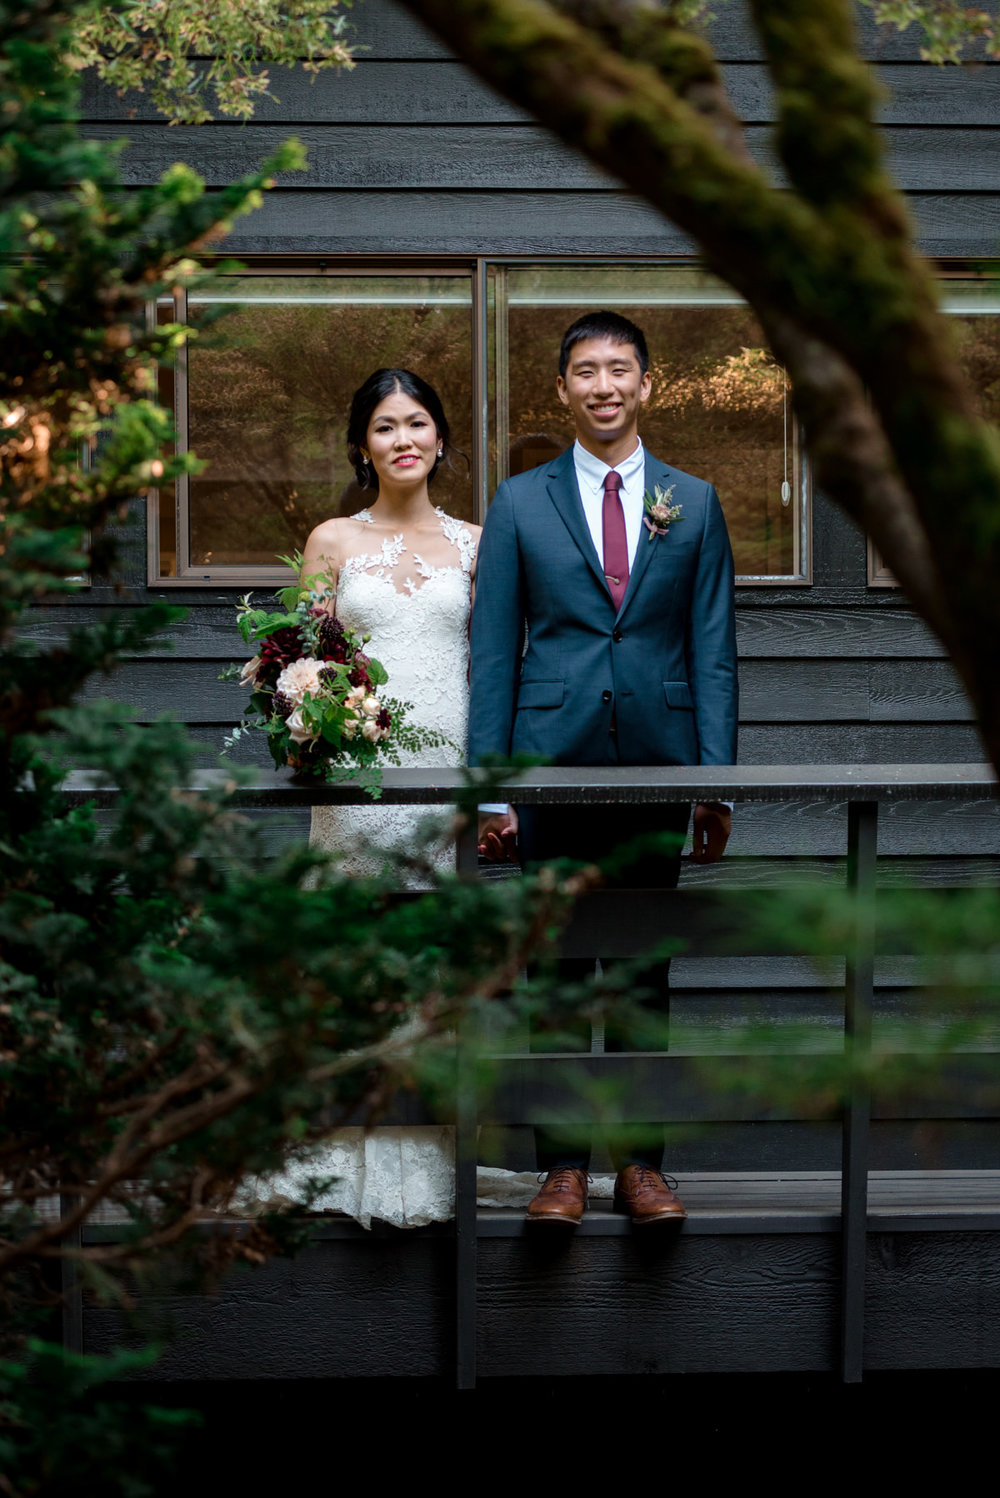 Andrew Tat - Documentary Wedding Photography - JM Cellars - Woodinville, Washington -Tammy & Aaron - 15.jpg